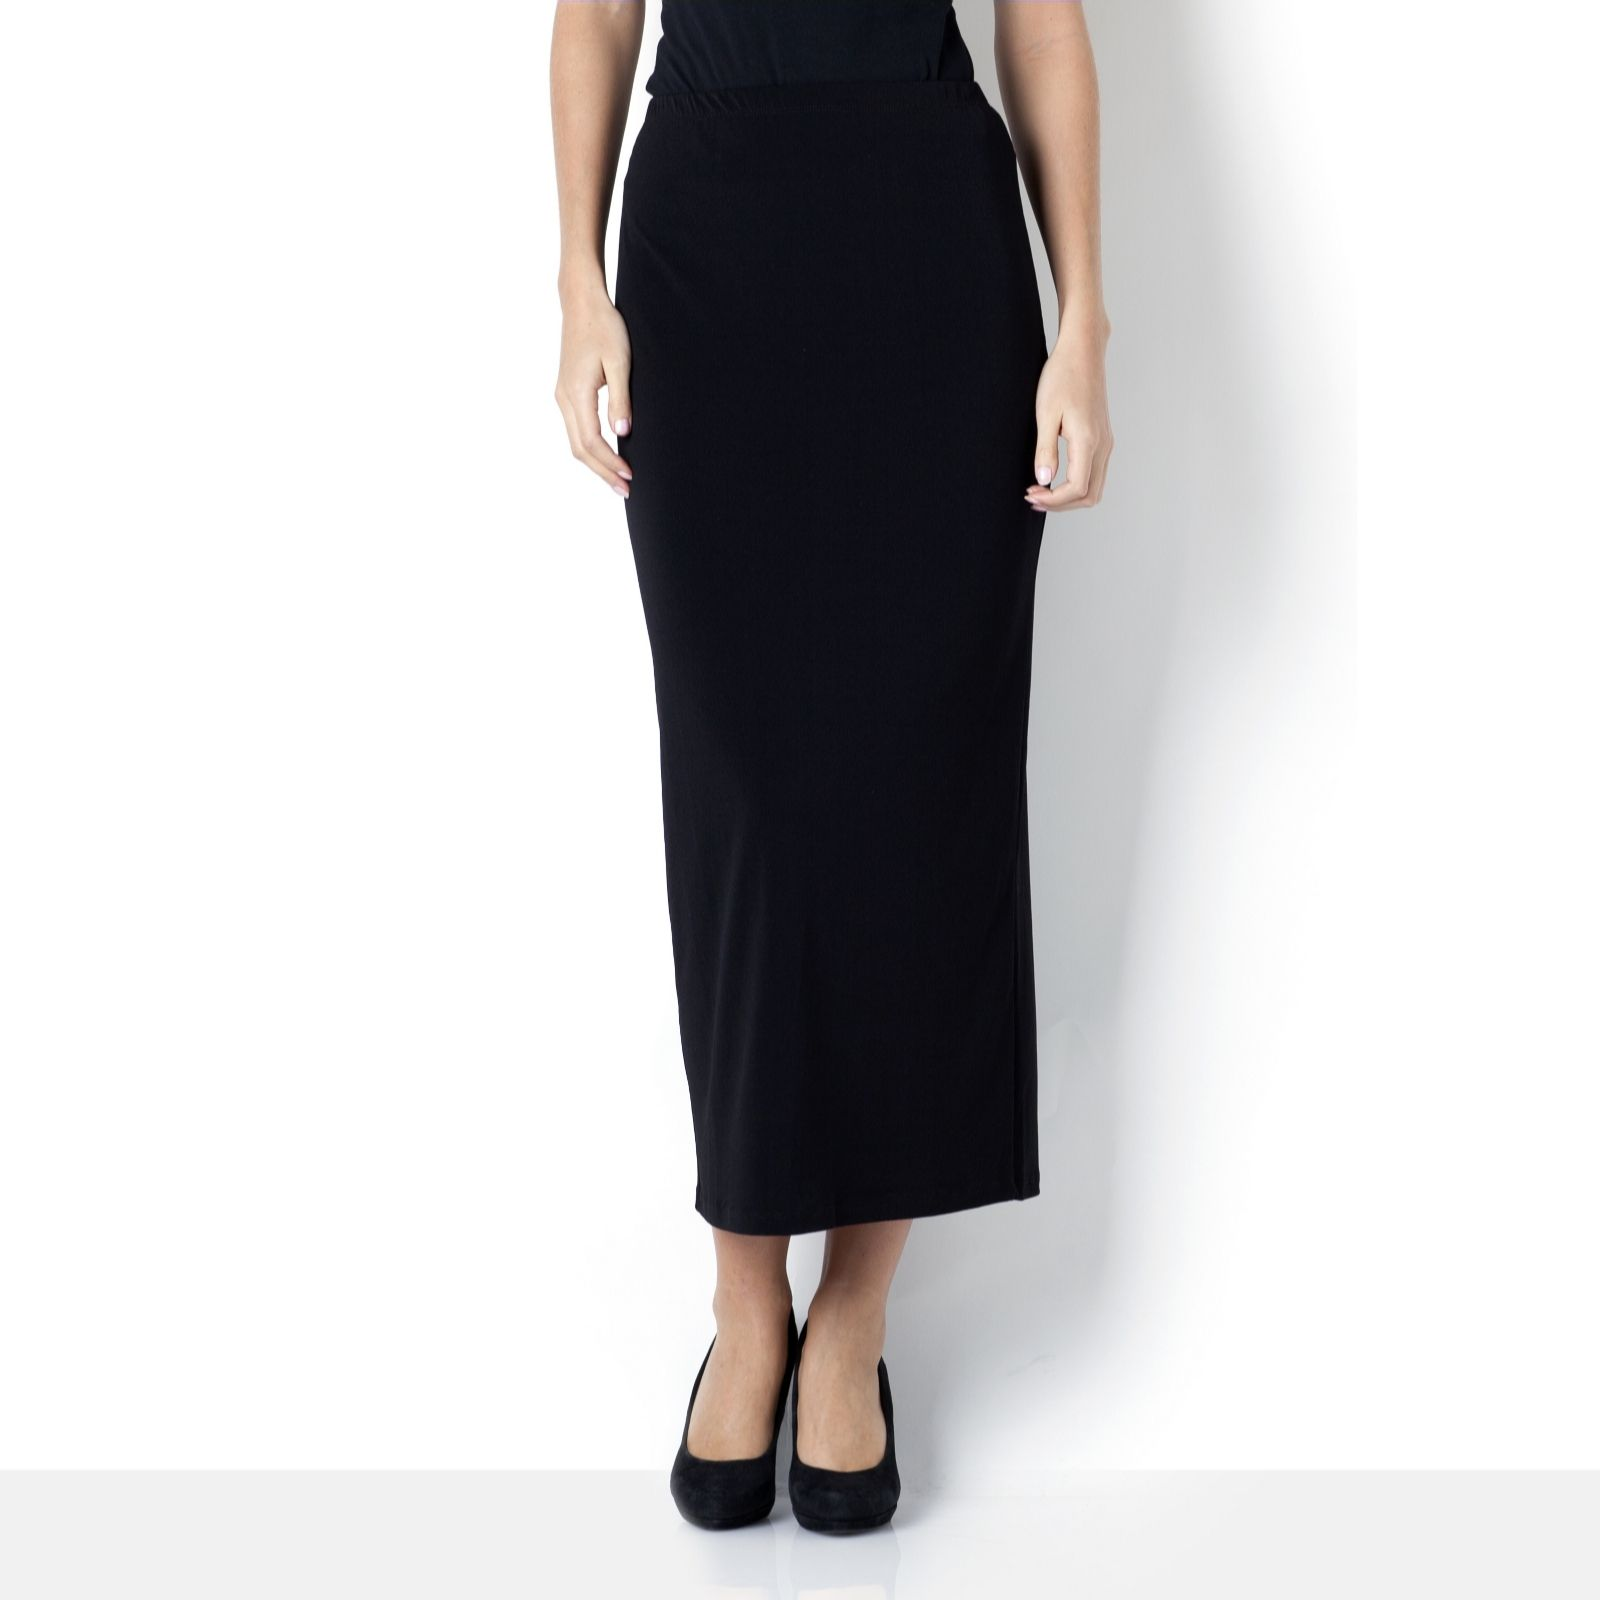 Kim & Co Stretch Crepe Long Skirt with Back Split - Page 1 - QVC UK